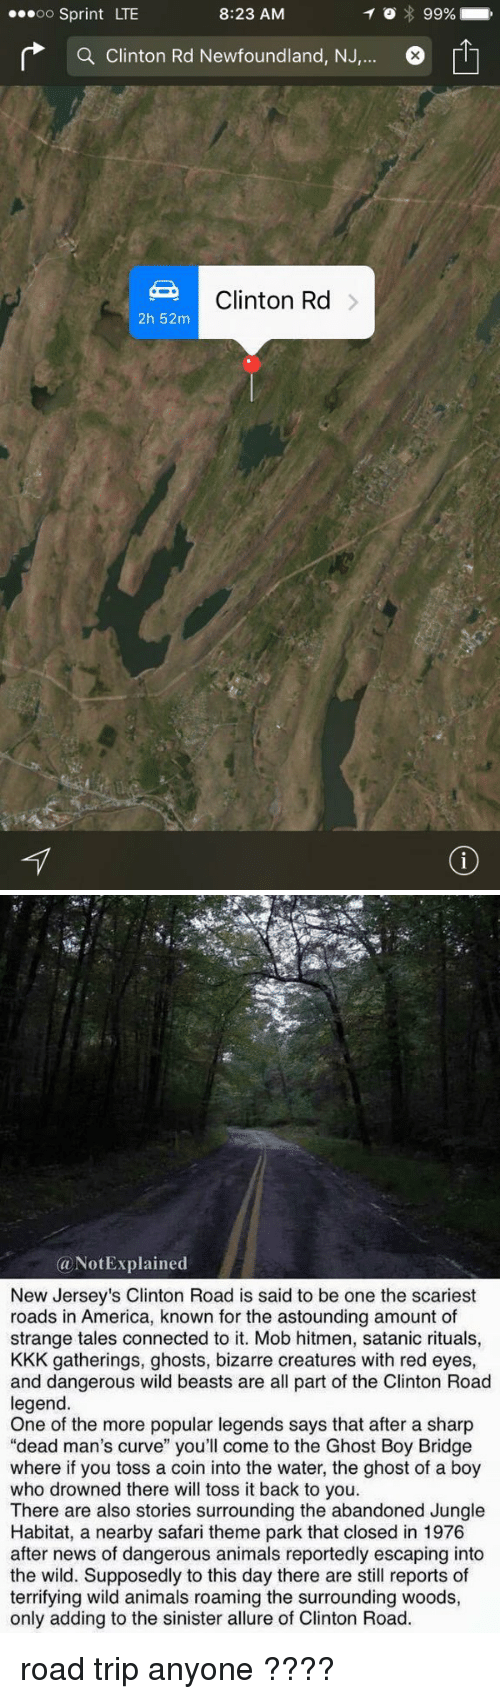 """newfoundland: ...oo Sprint LTE  8:23 AM  a Clinton Rd Newfoundland, NJ  Clinton Rd  2h 52m  99%   Not Explained  (a New Jersey's Clinton Road is said to be one the scariest  roads in America, known for the astounding amount of  strange tales connected to it. Mob hitmen, satanic rituals,  KKK gatherings, ghosts, bizarre creatures with red eyes,  and dangerous wild beasts are all part of the Clinton Road  legend  One of the more popular legends says that after a sharp  """"dead man's curve"""" you'll come to the Ghost Boy Bridge  where if you toss a coin into the water, the ghost of a boy  who drowned there will toss it back to you  There are also stories surrounding the abandoned Jungle  Habitat, a nearby safari theme park that closed in 1976  after news of dangerous animals reportedly escaping into  the wild. Supposedly to this day there are still reports of  terrifying wild animals roaming the surrounding woods,  only adding to the sinister allure of Clinton Road. road trip anyone ????"""